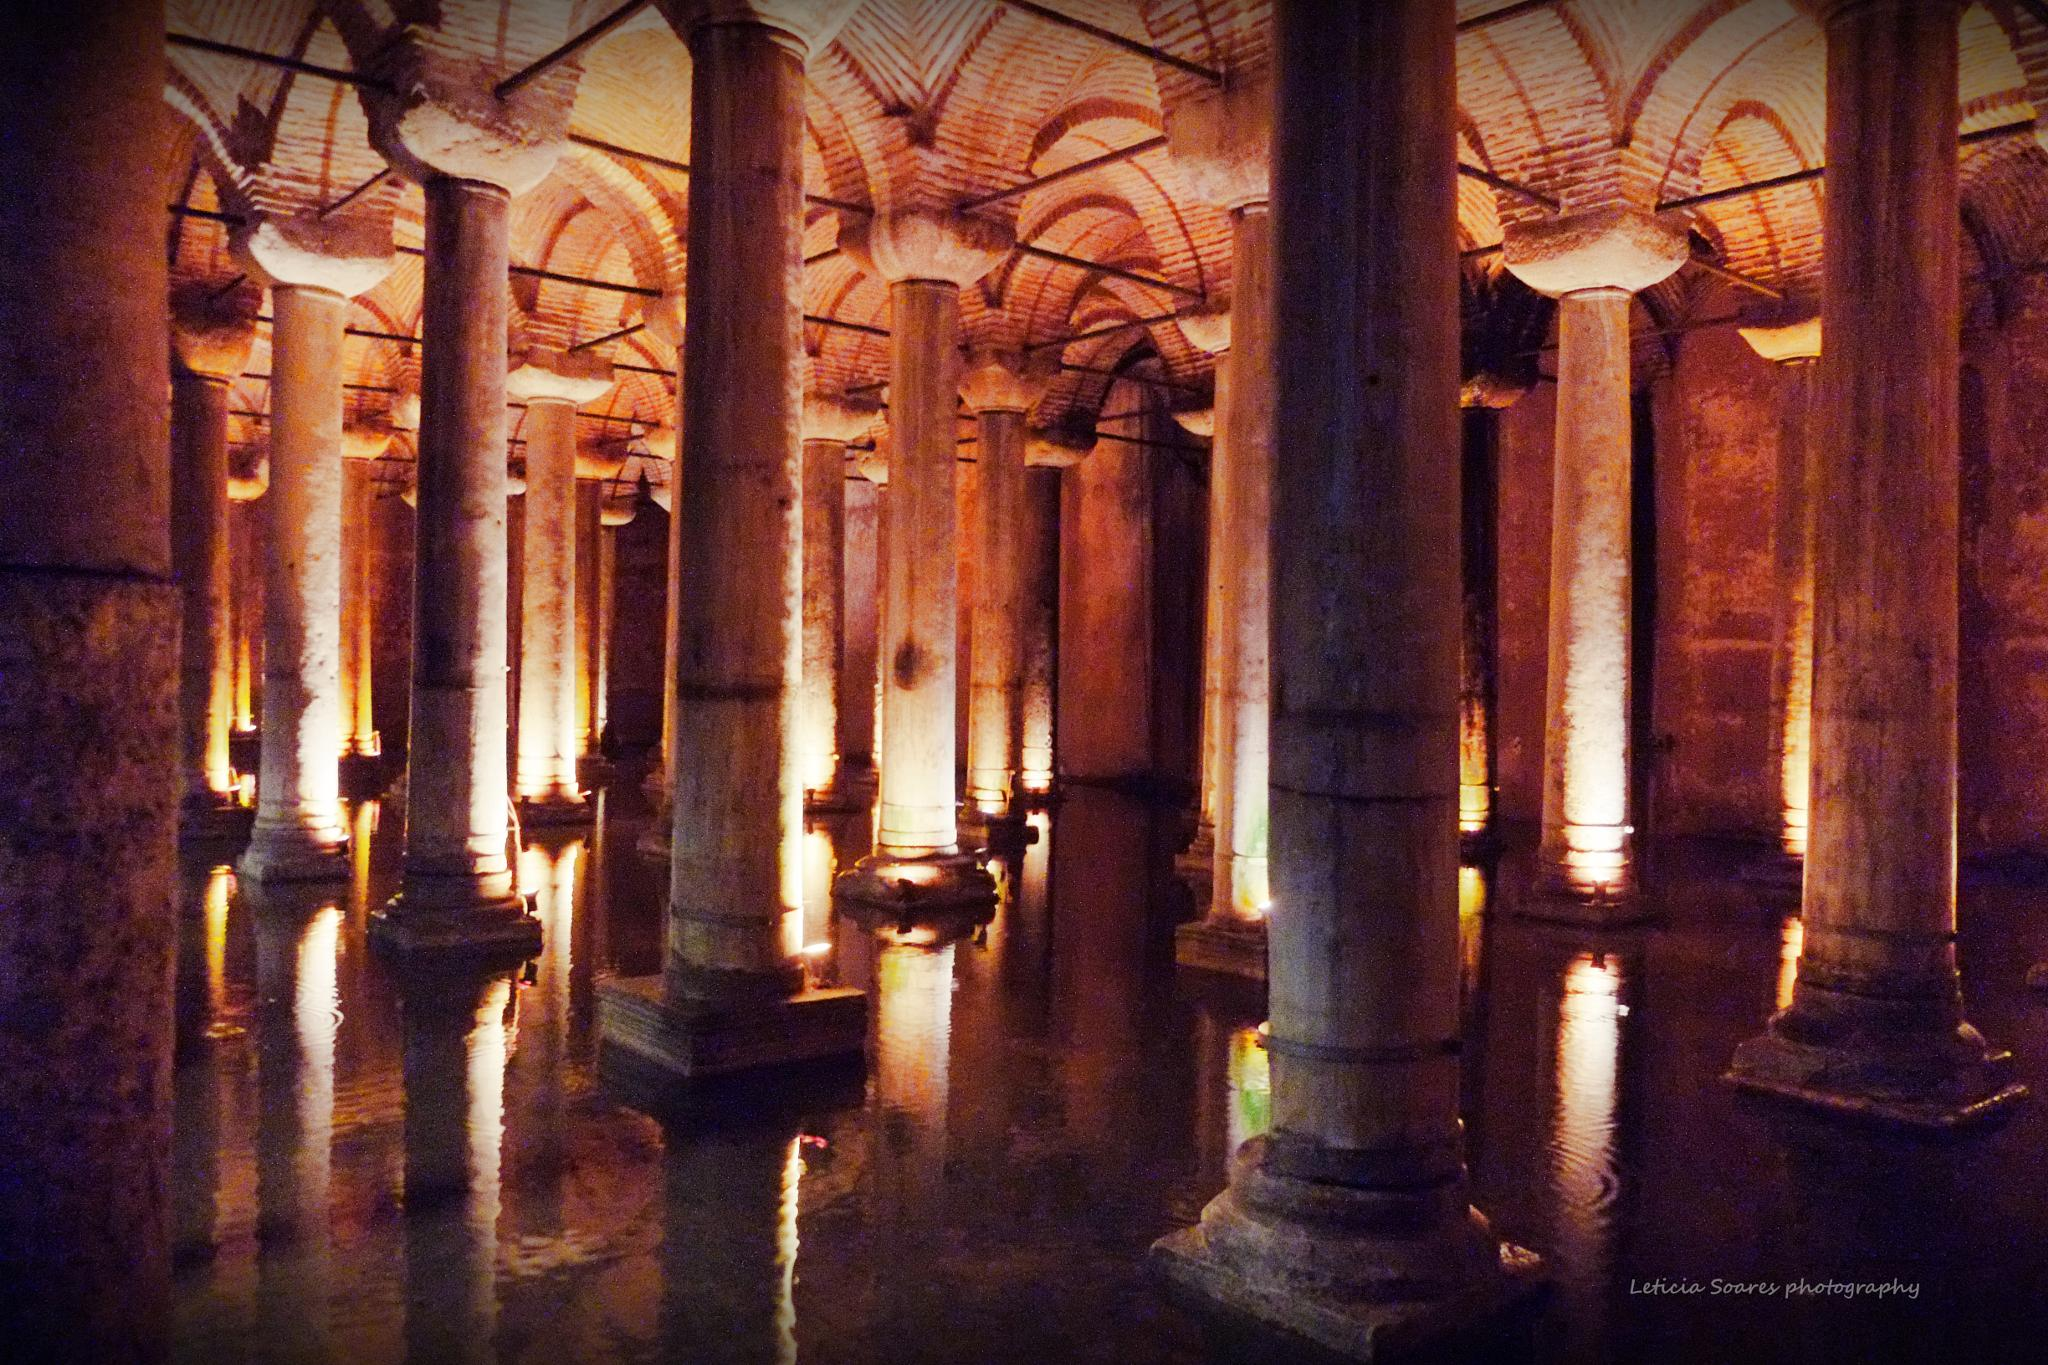 BASILICA CISTERNS OF ISTANBUL by letportomaia